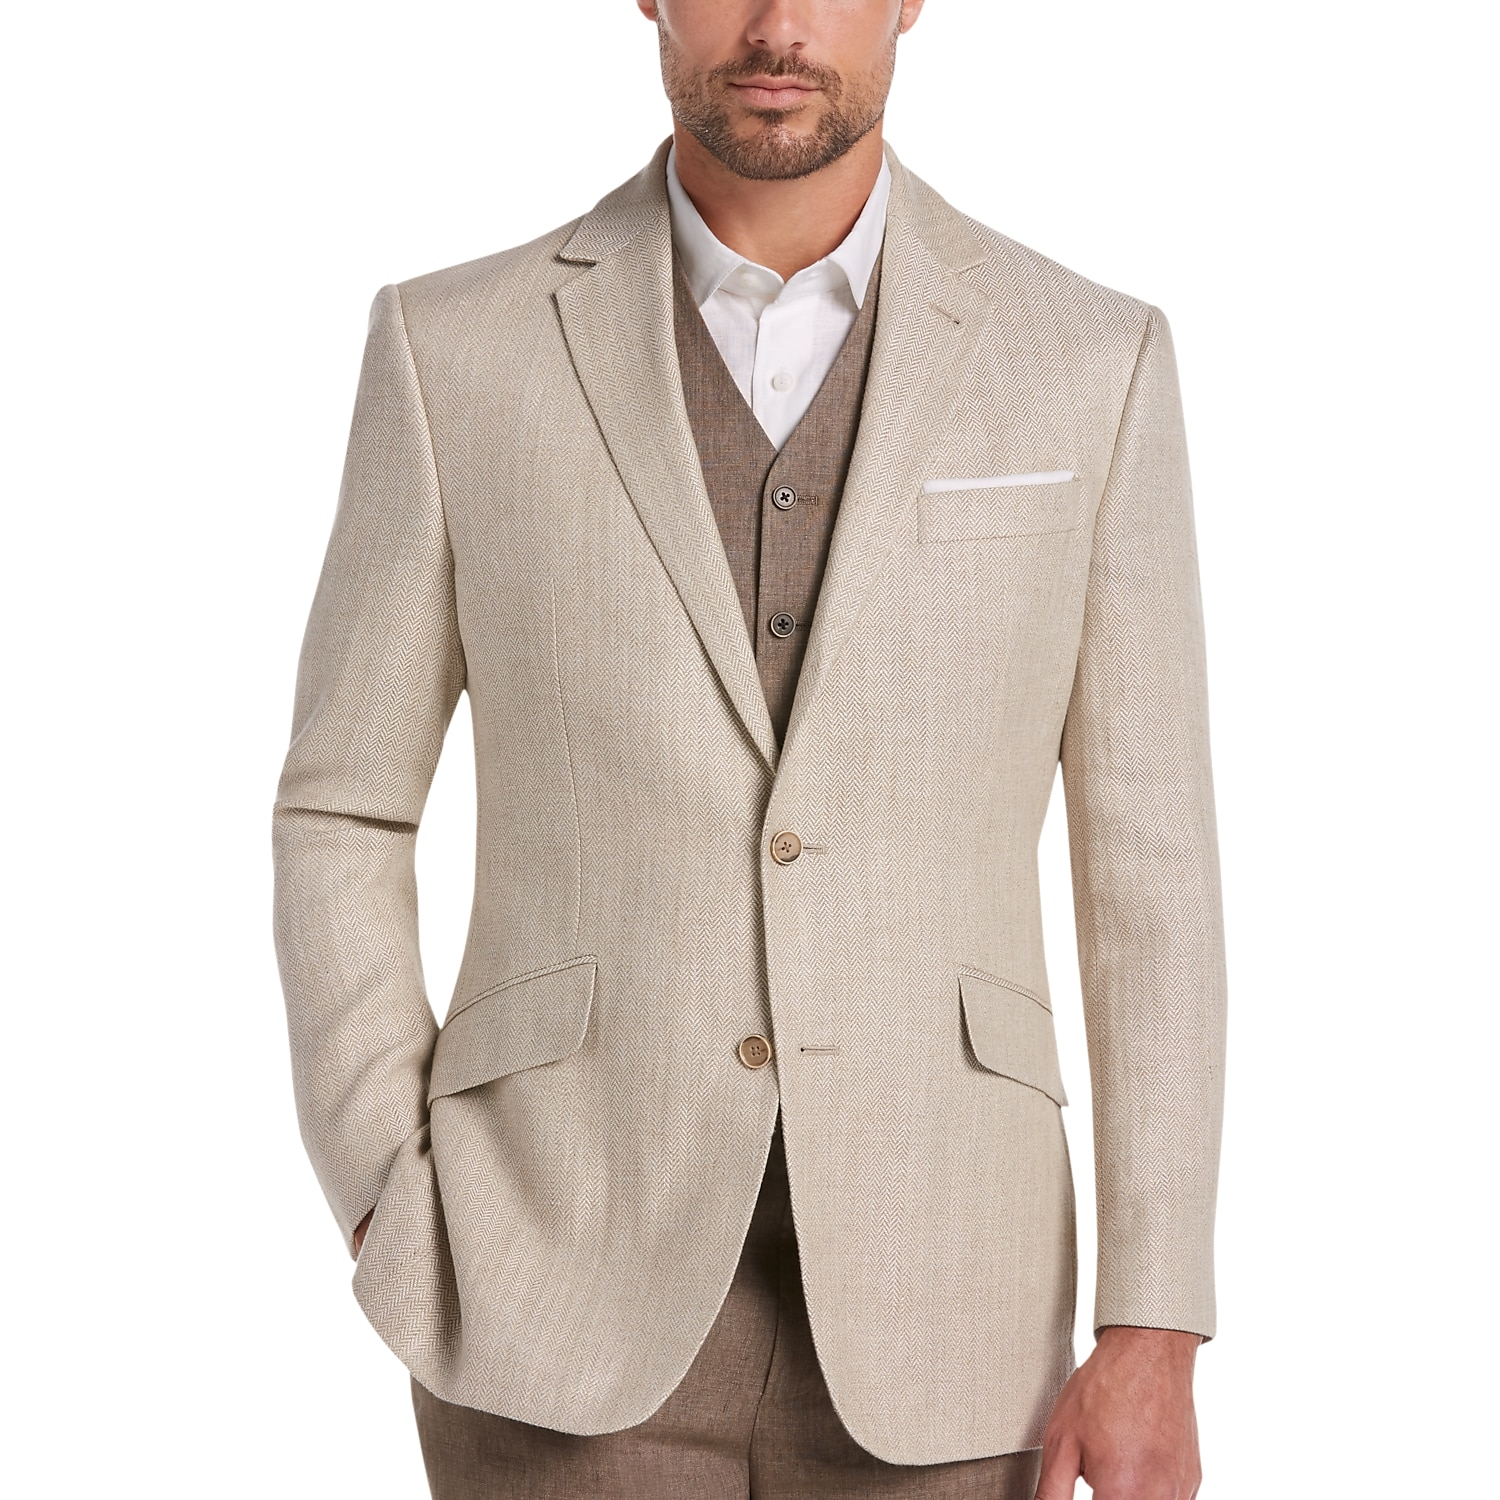 Joseph Abboud Tan Herringbone Modern Fit Linen Sport Coat - Men's ...